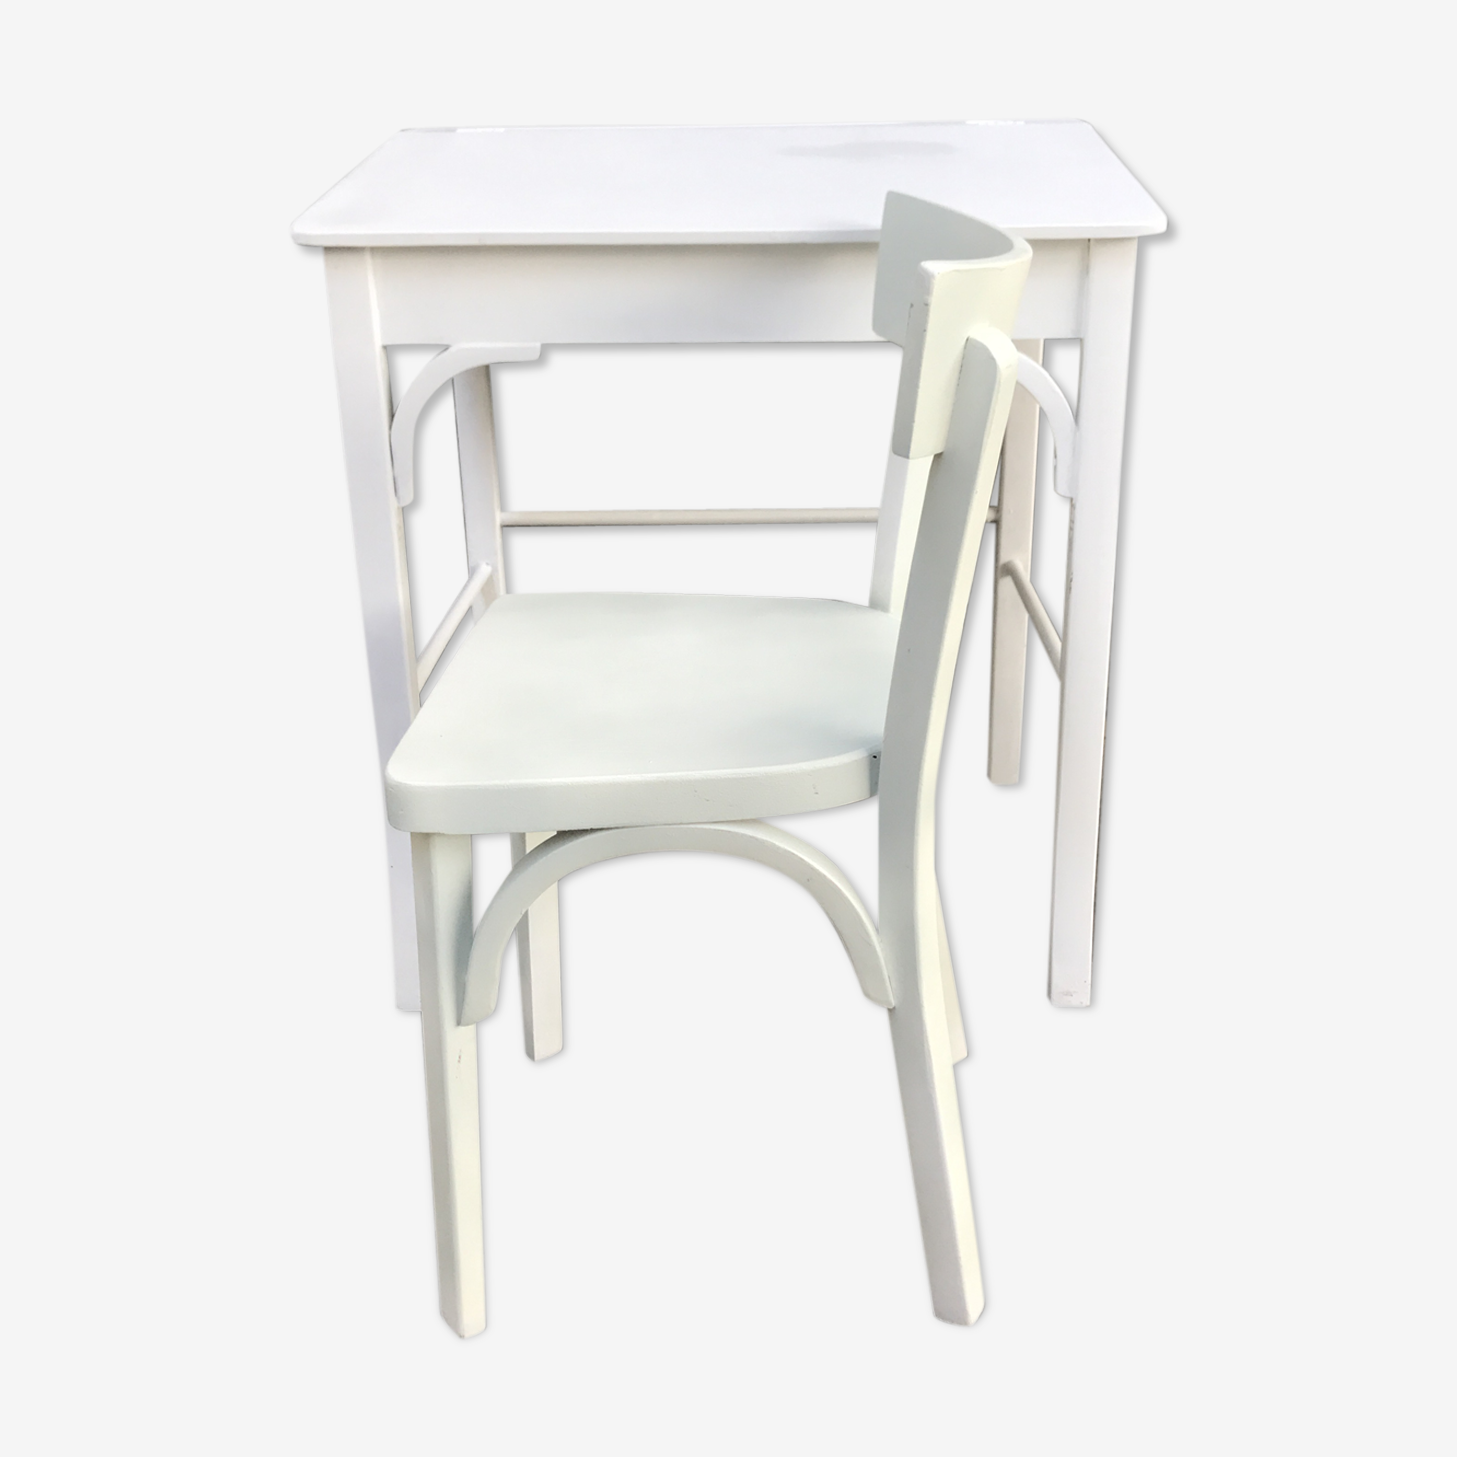 All chair and desk Baumann